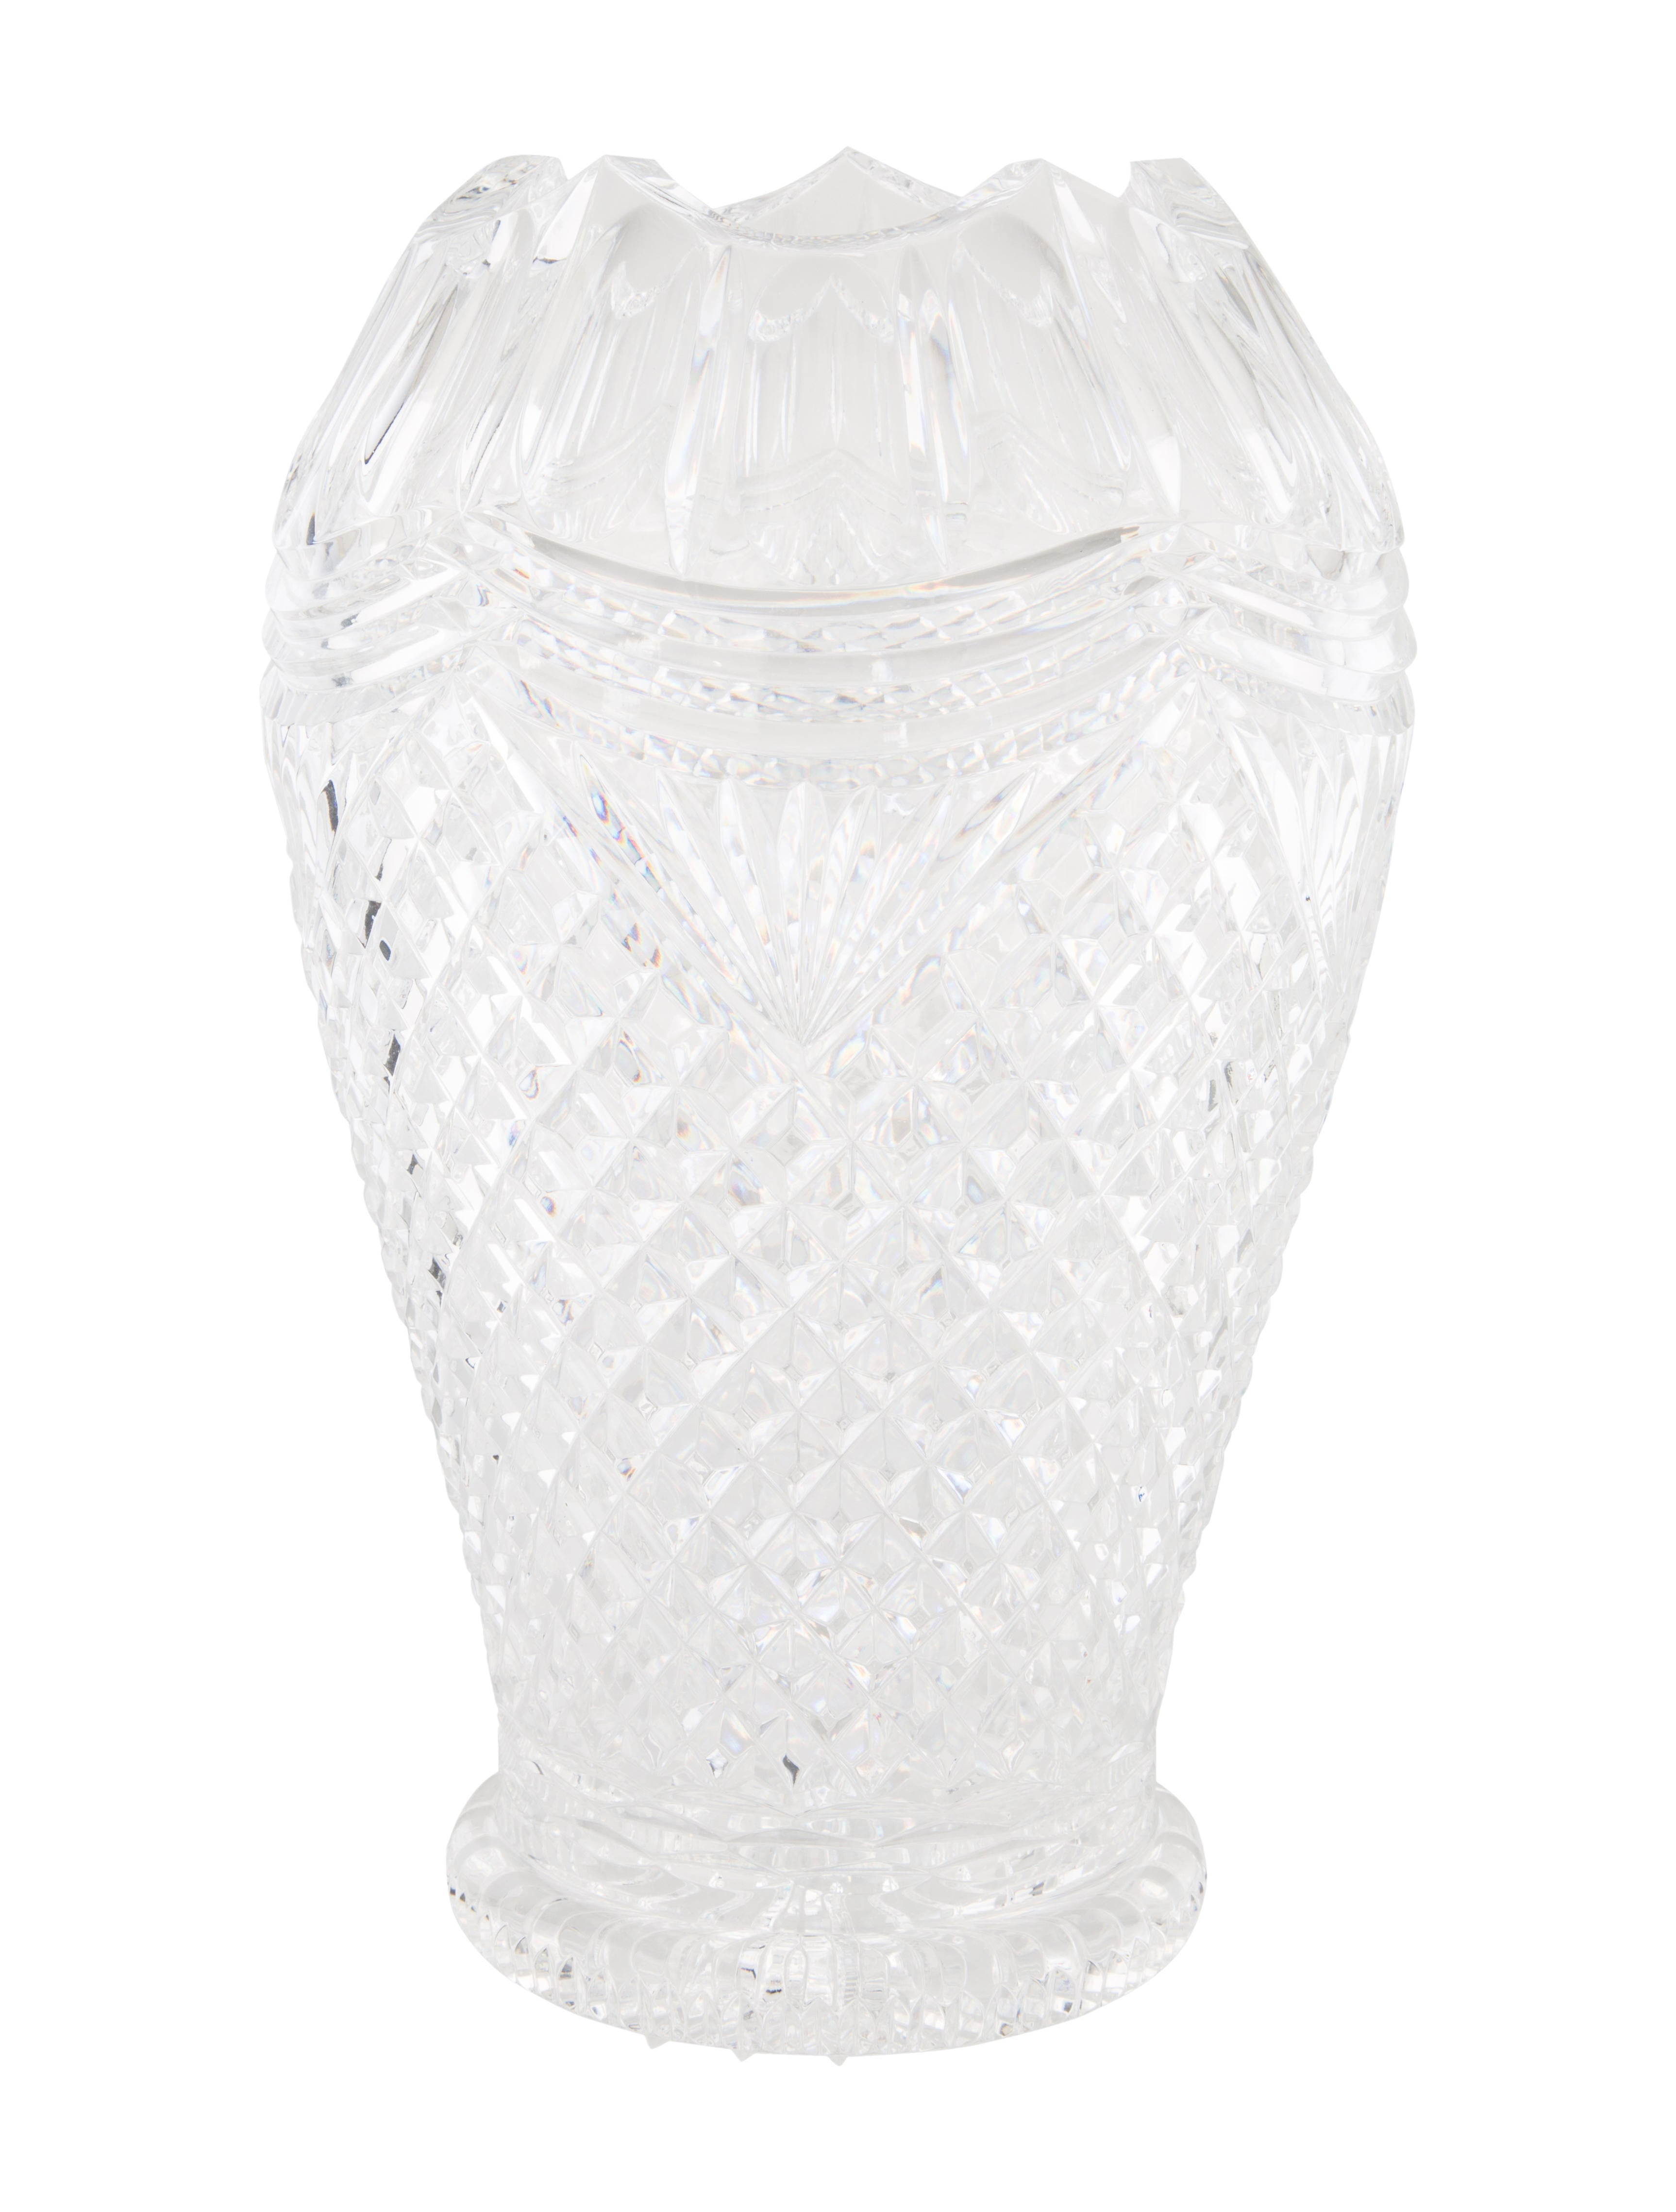 Waterford crystal decorative vase decor and accessories Crystal home decor